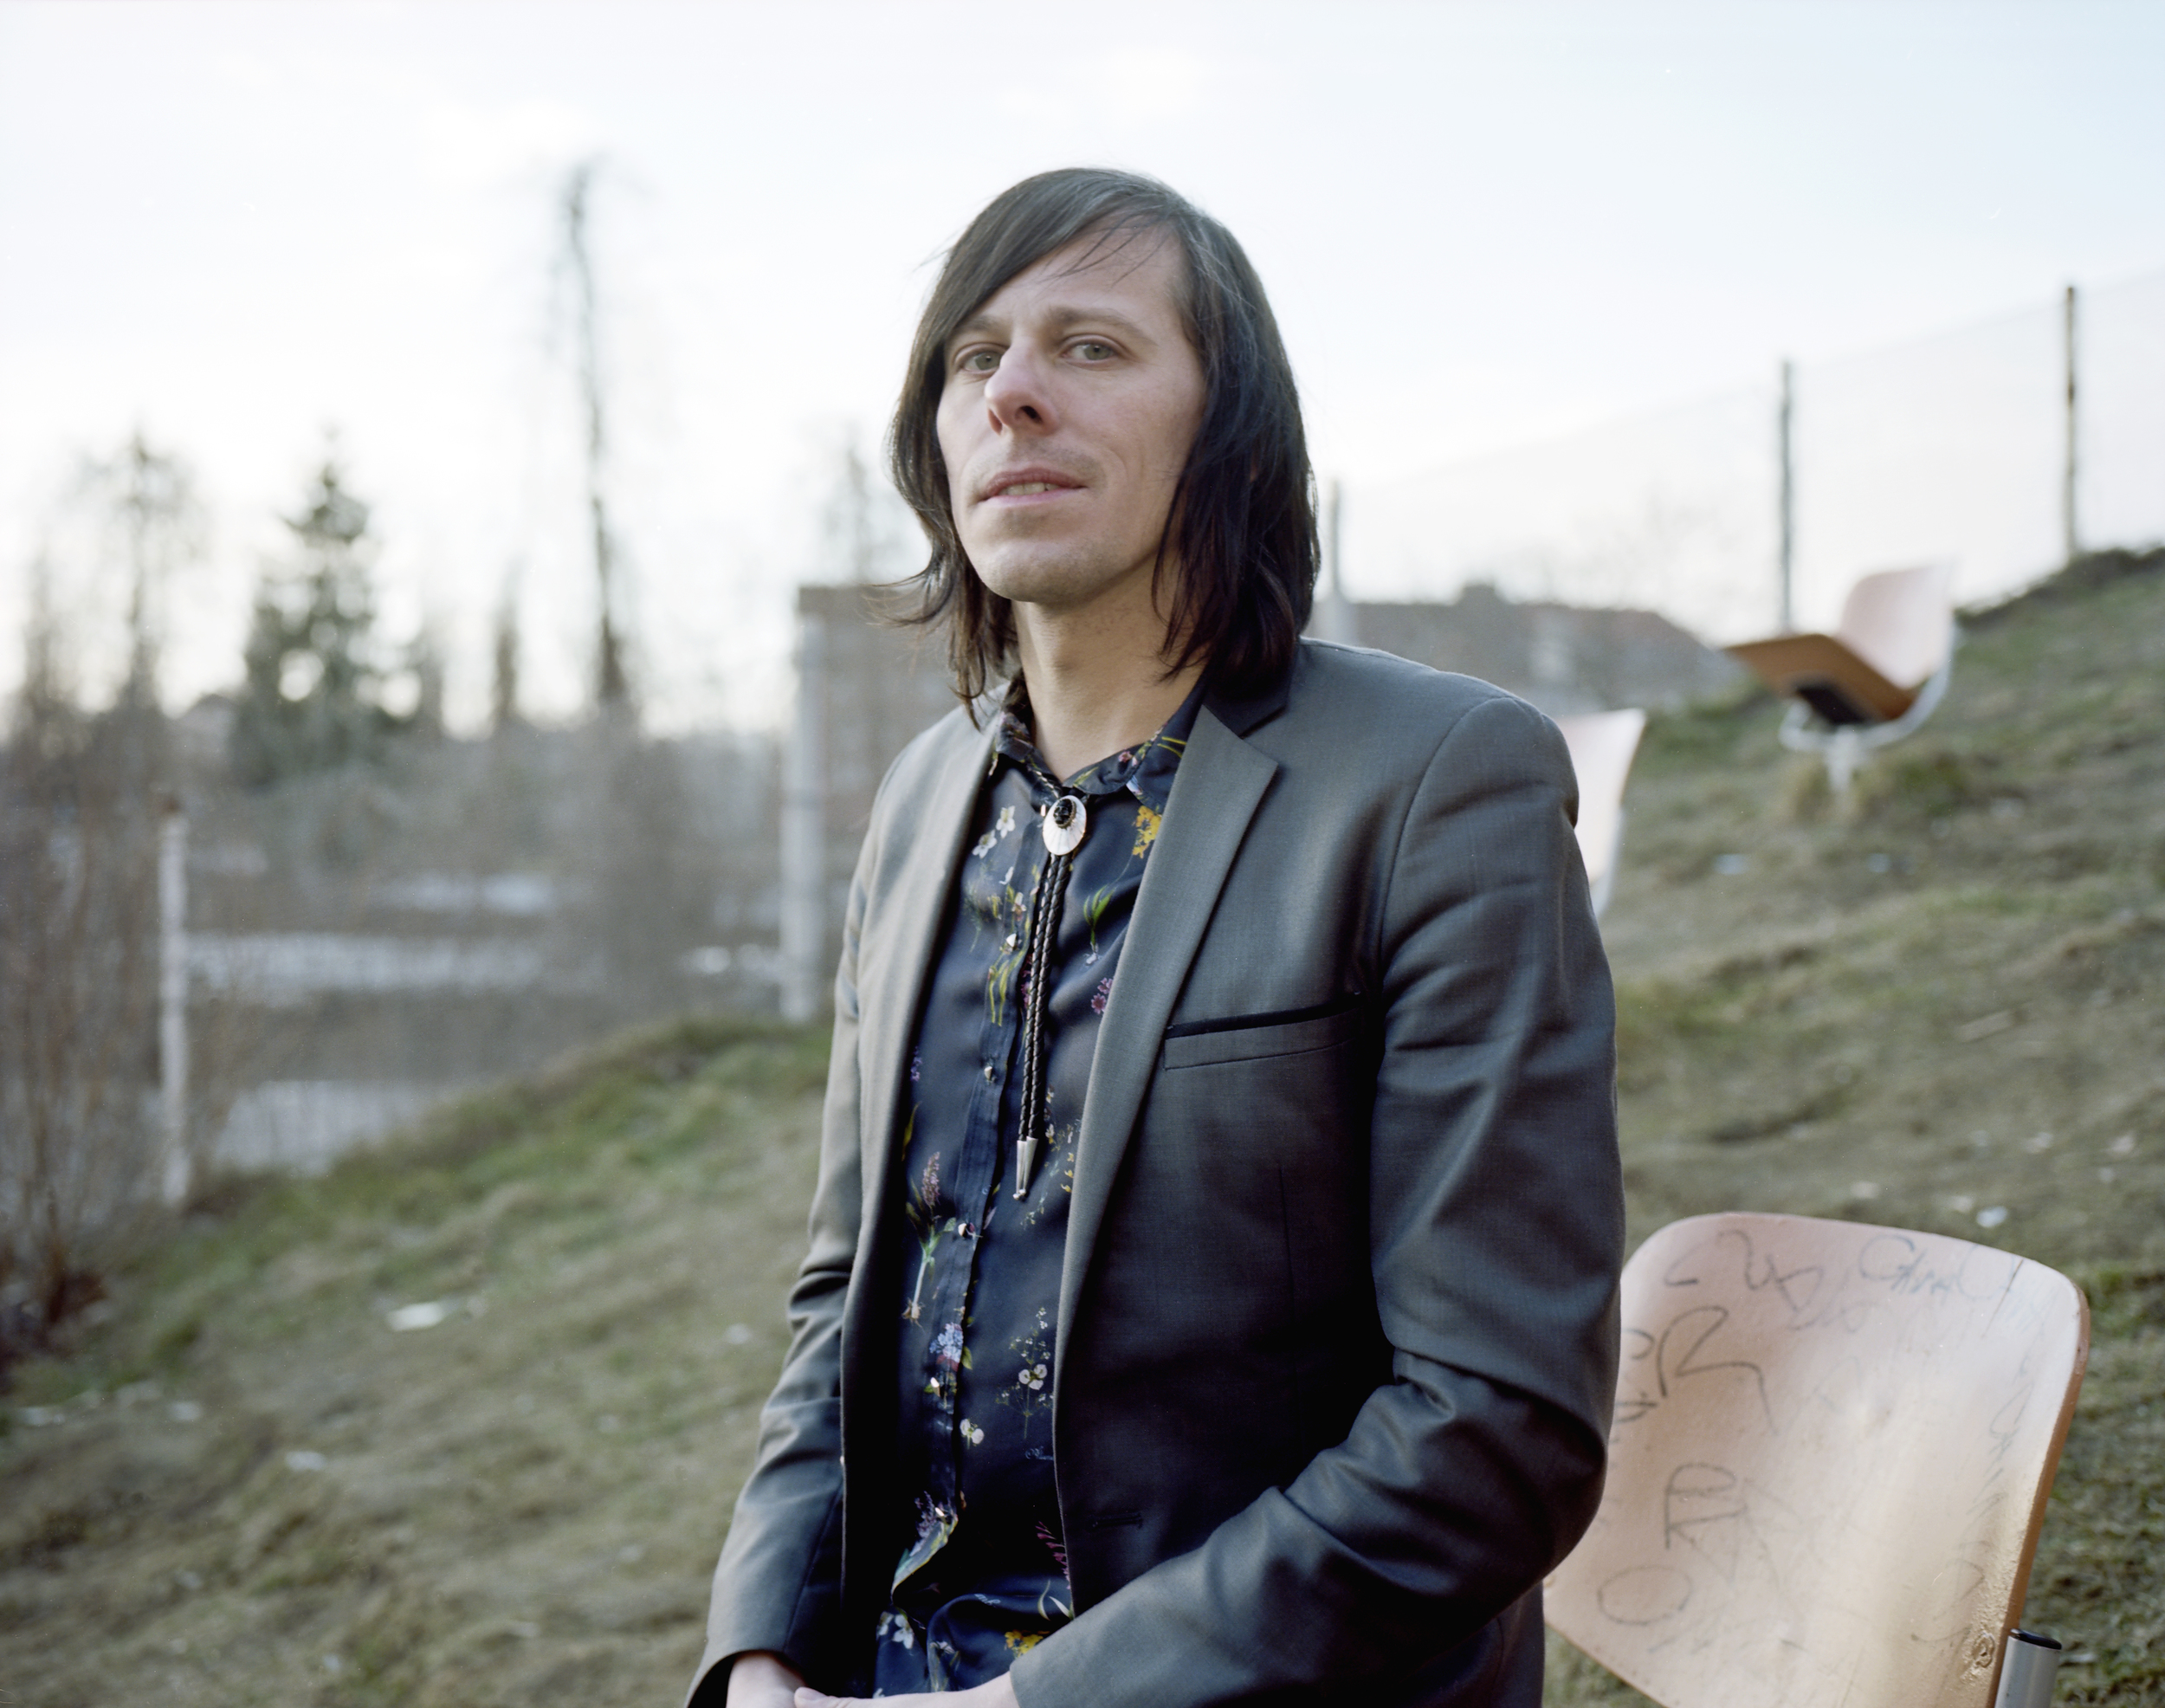 Ken Stringfelllow and Mike Lucero collaborated on a song that will be featured on the FM Collective Album.